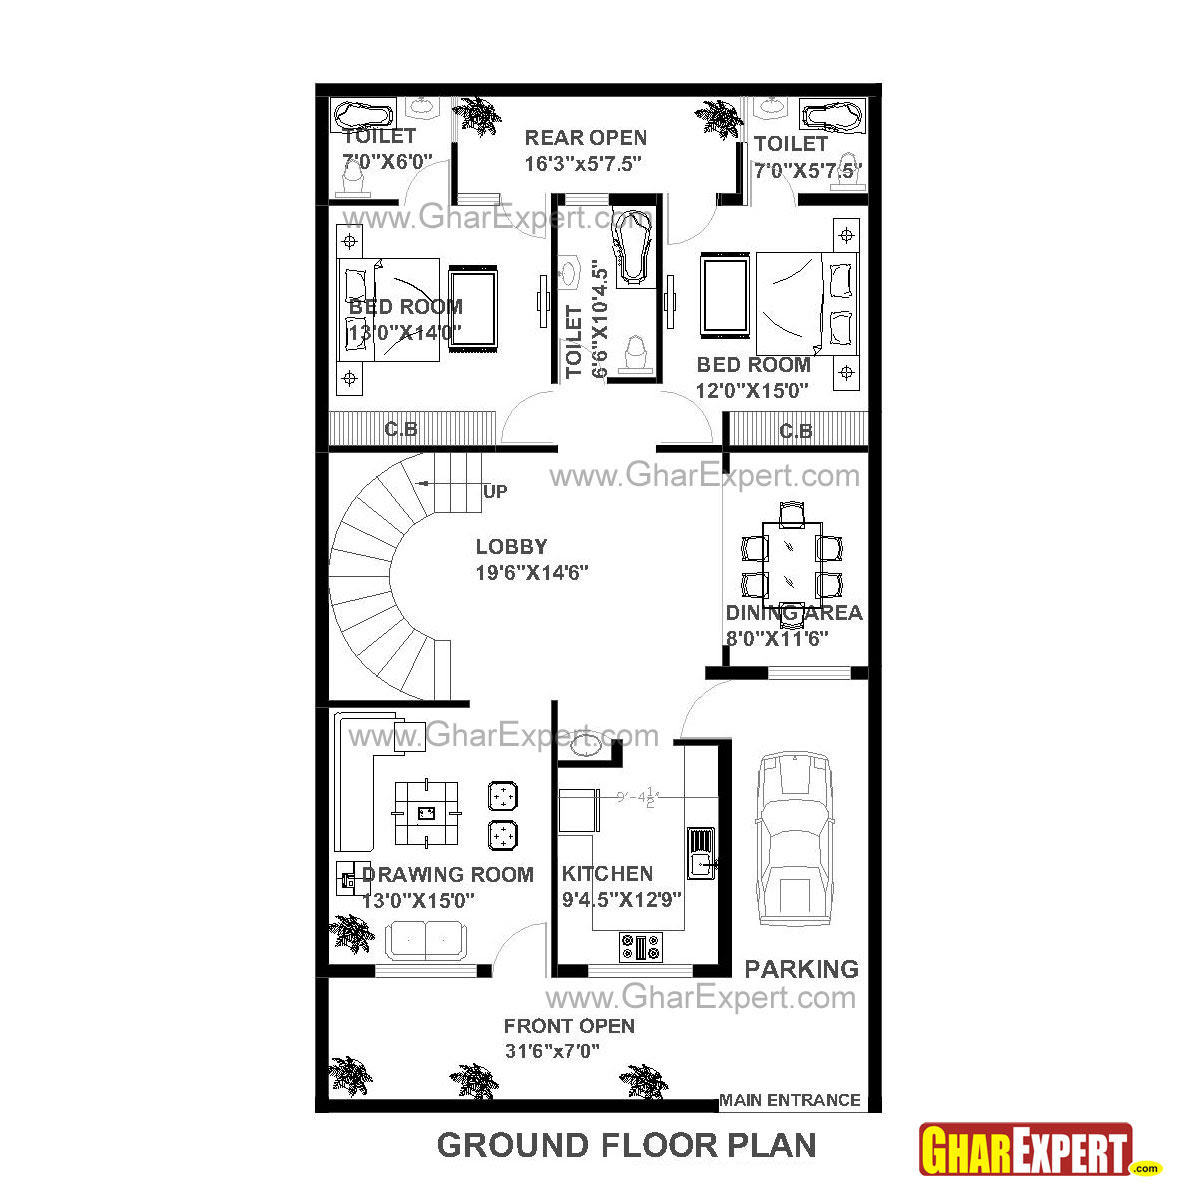 House Plan Of 30 Feet By 60 Feet Plot 1800 Squre Feet Built Area On